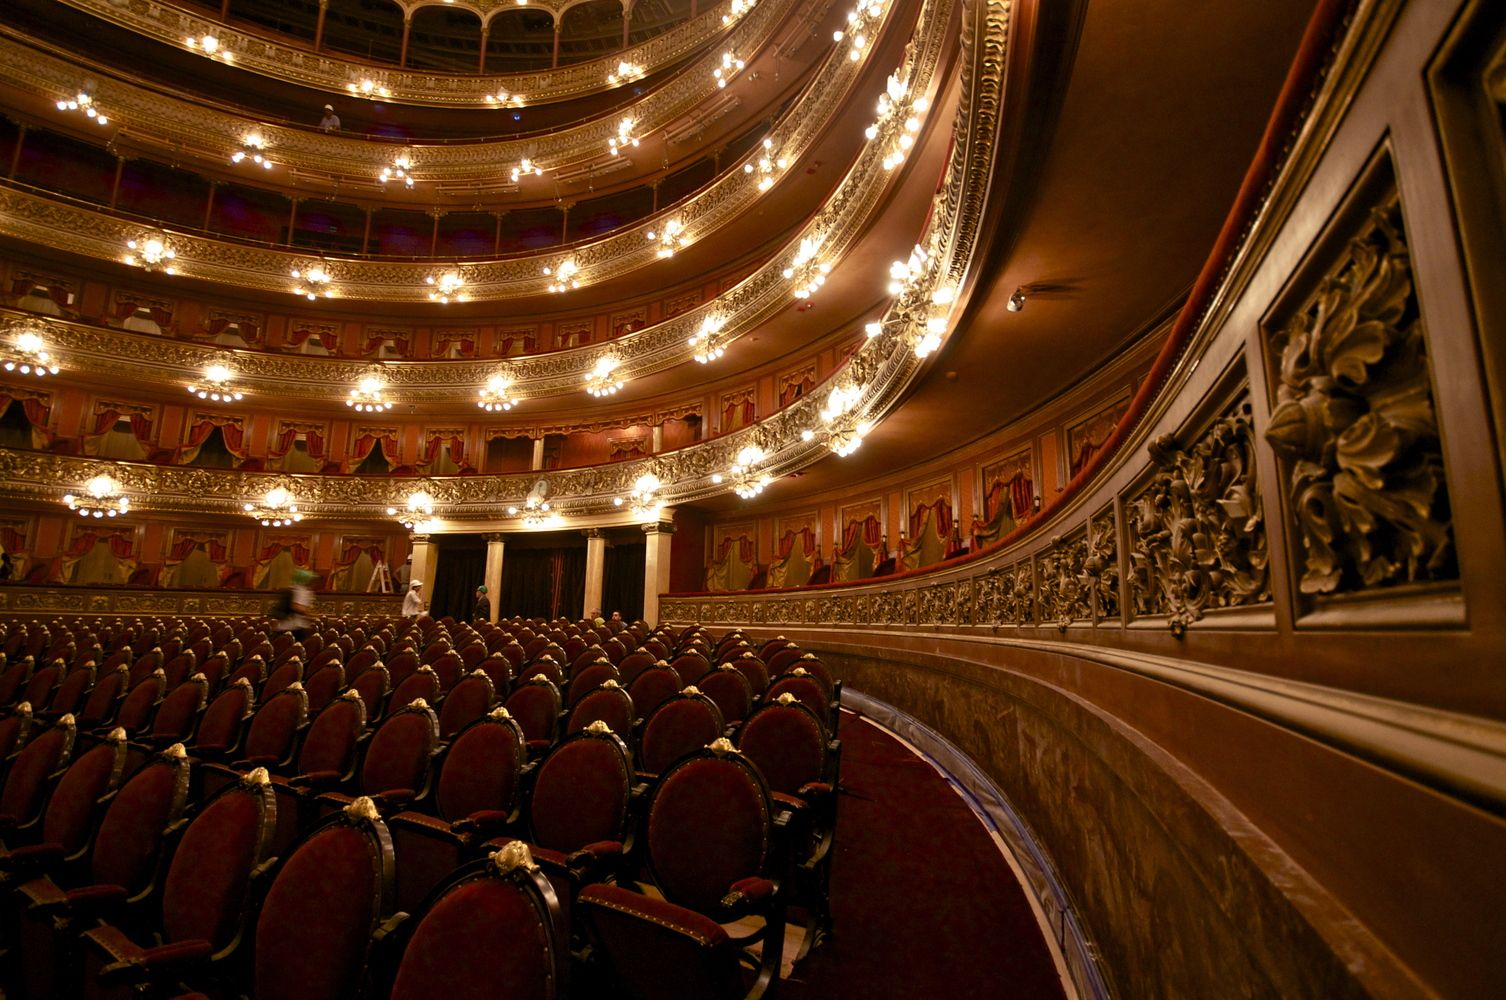 Gallery of The History of One of the Best Theaters in the World: Teatro Colón in Buenos Aires - 9